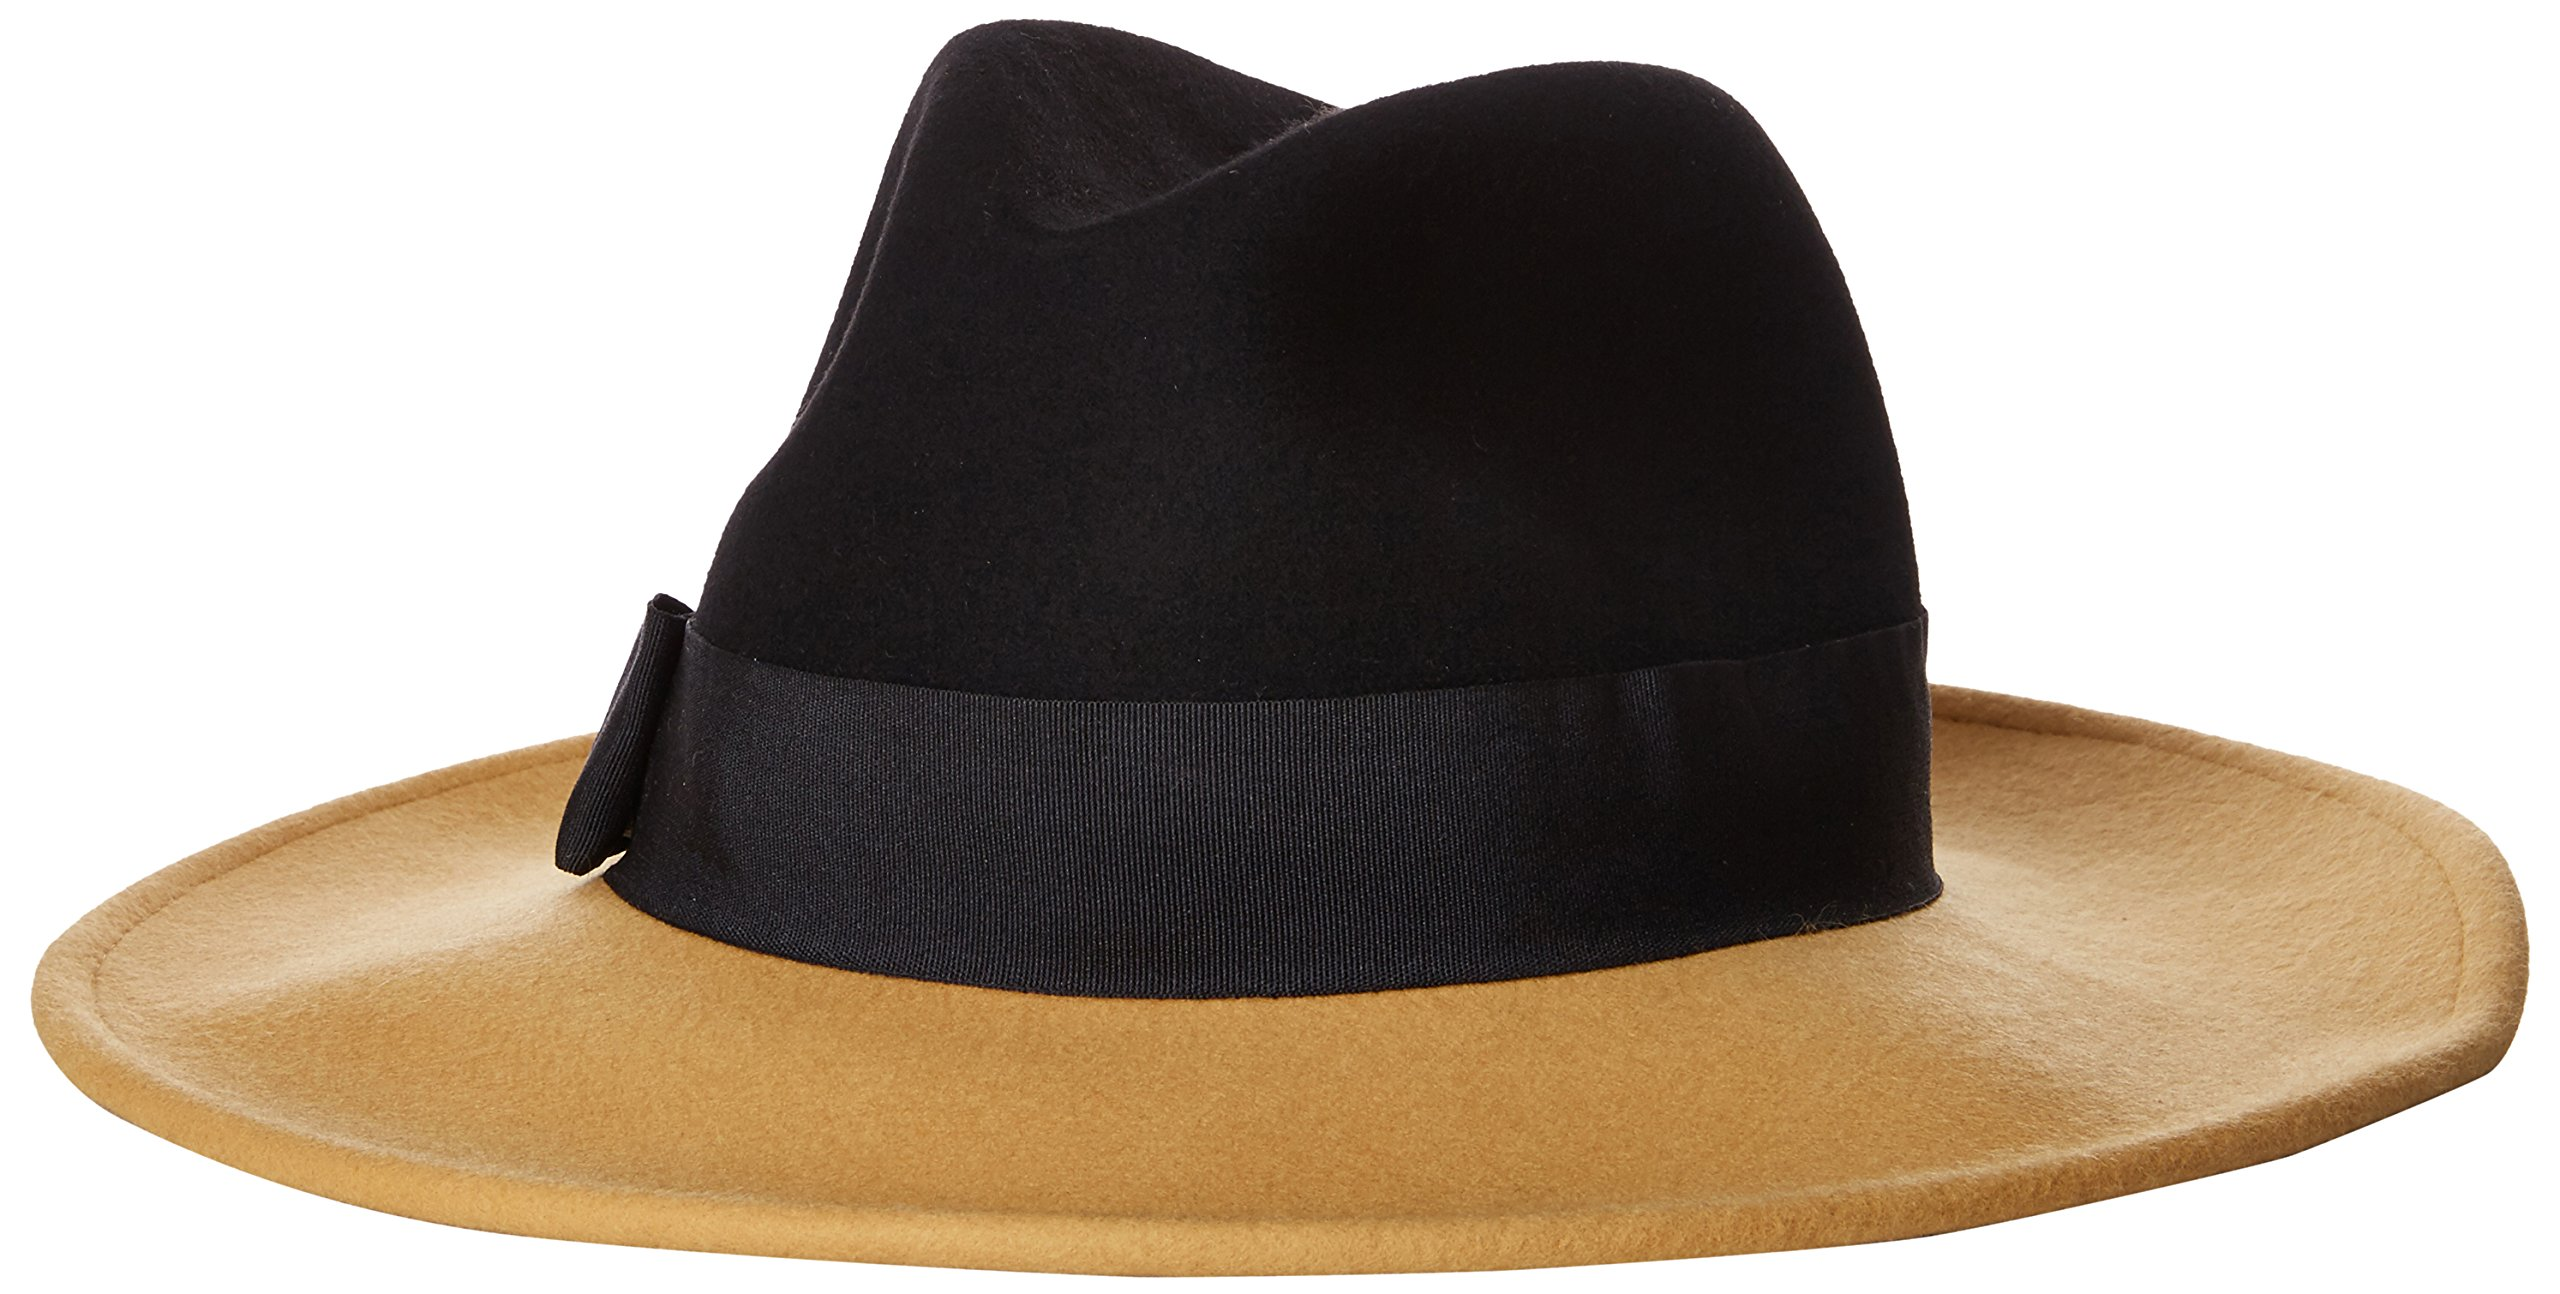 San Diego Hat Company Women's Color Block Fedora Hat, Black, Total Units